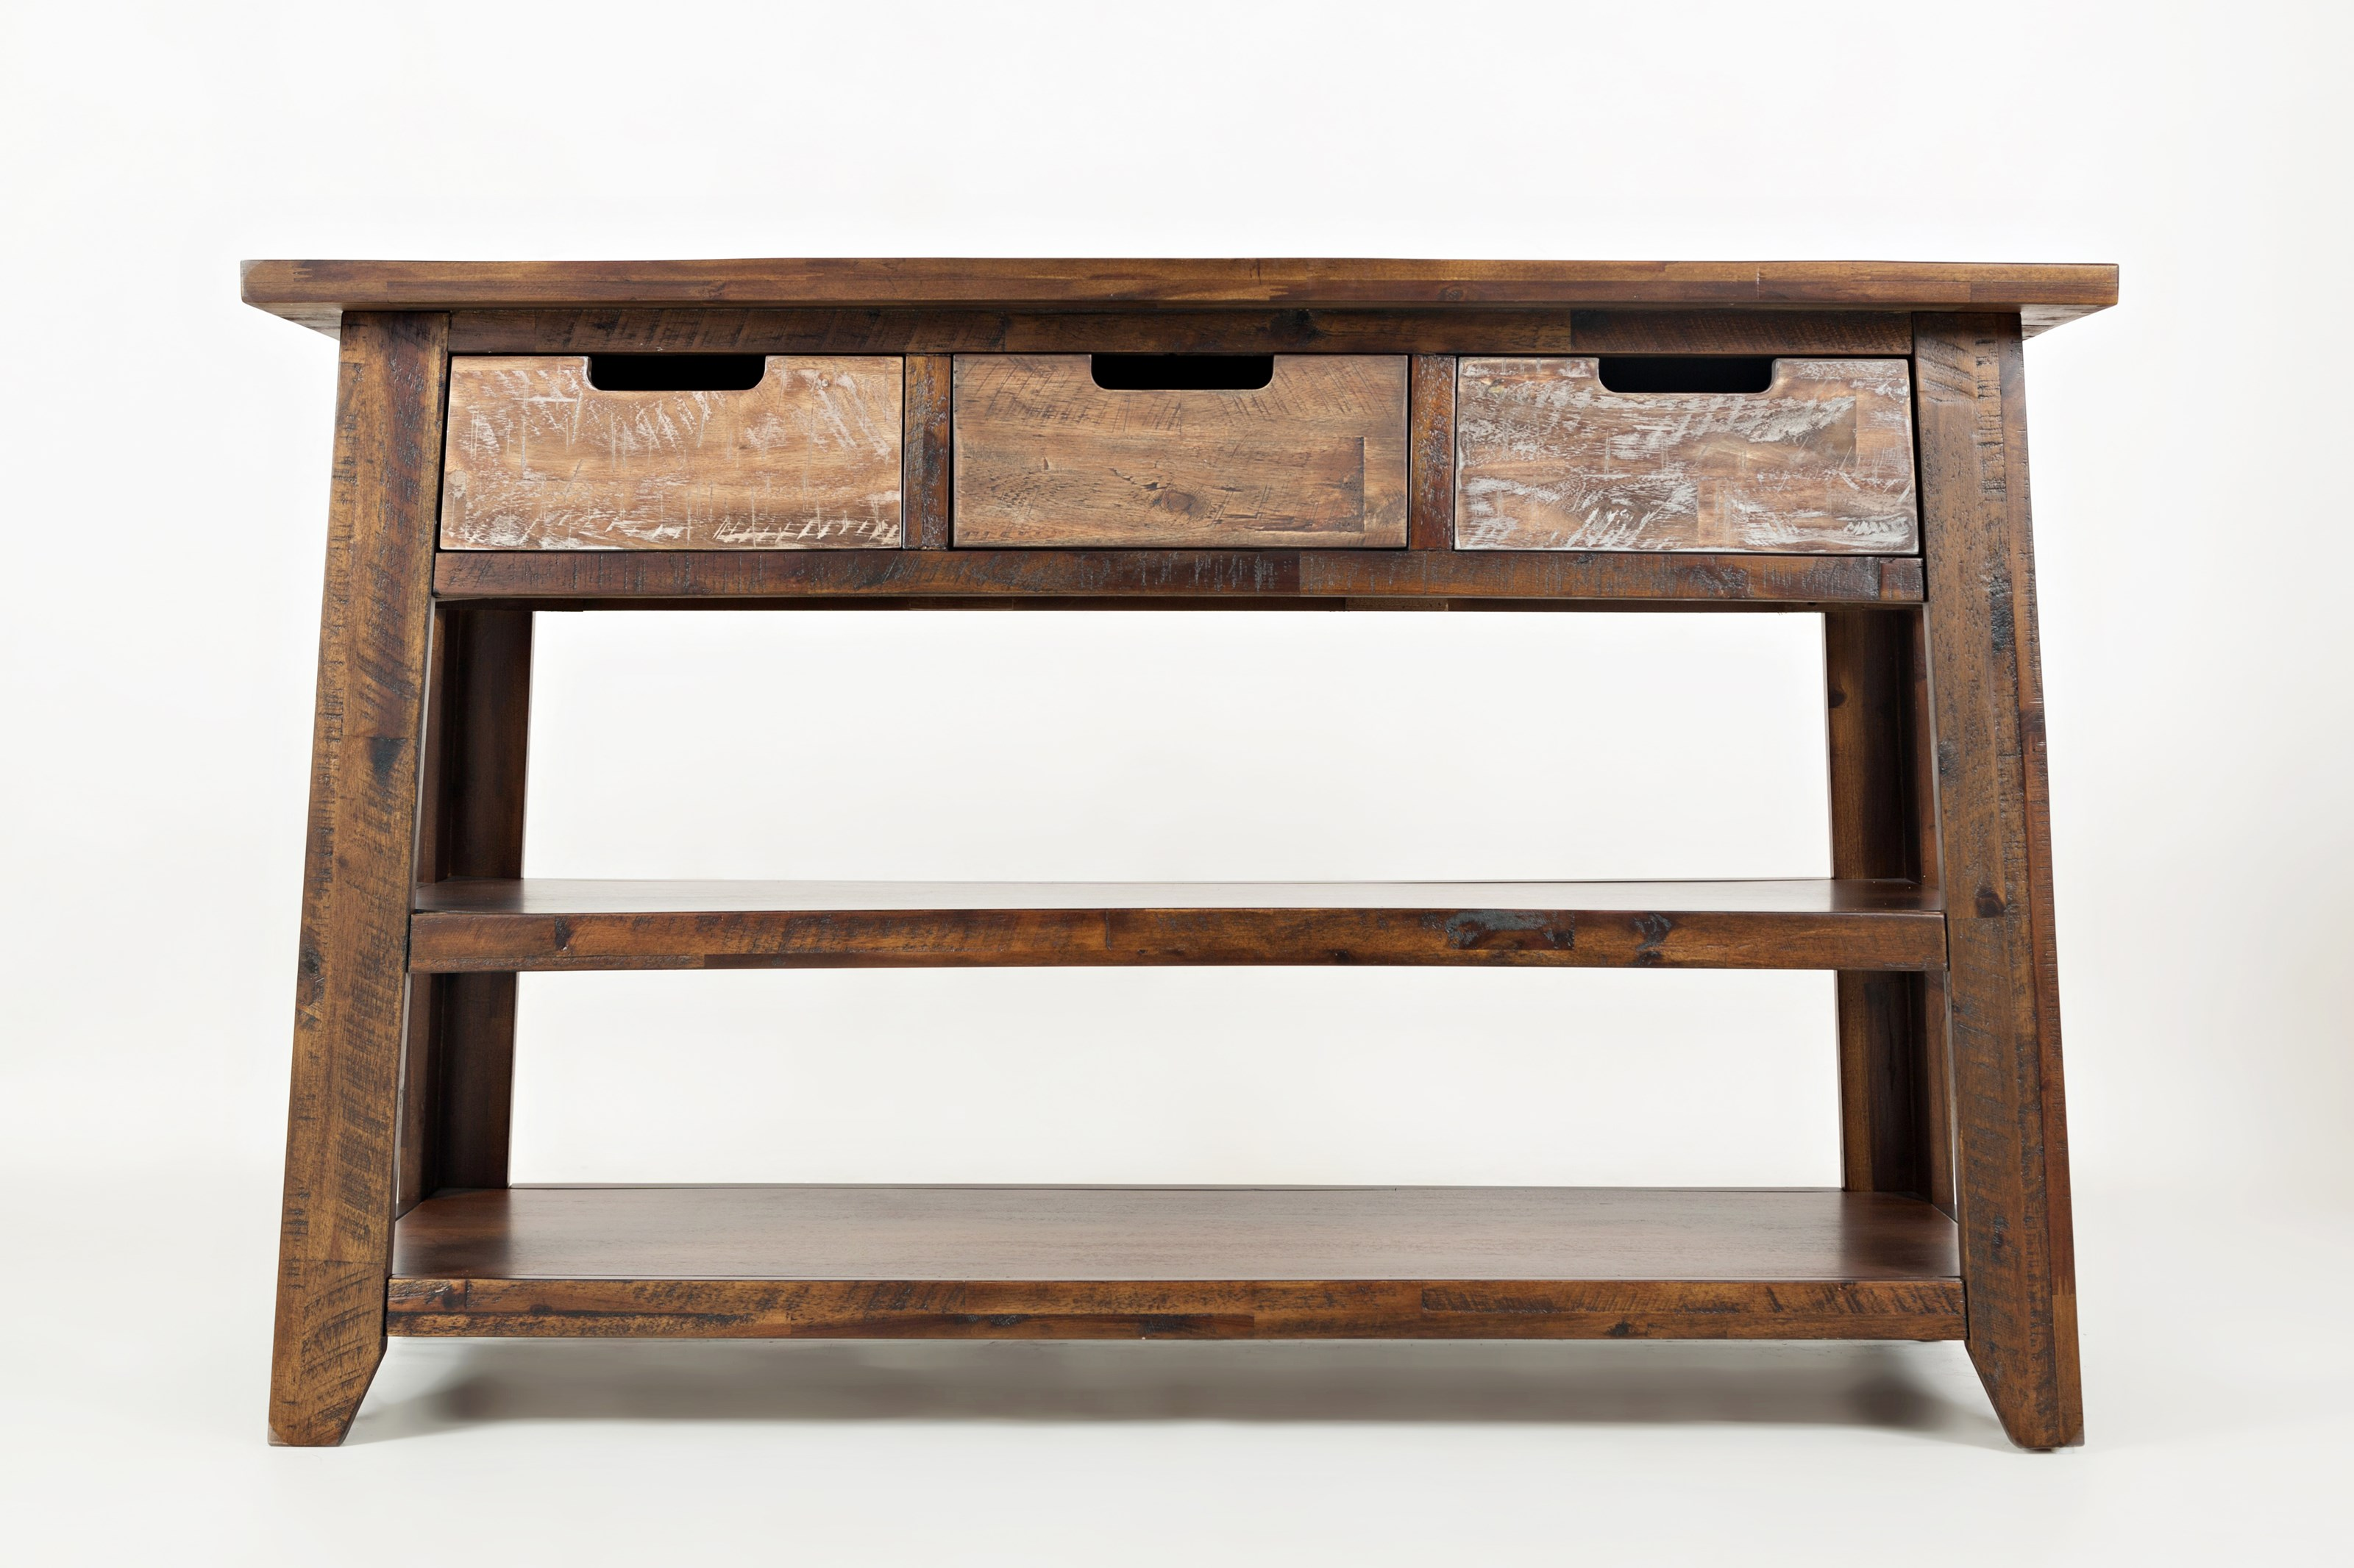 Painted Canyon Sofa Table by Jofran at Jofran